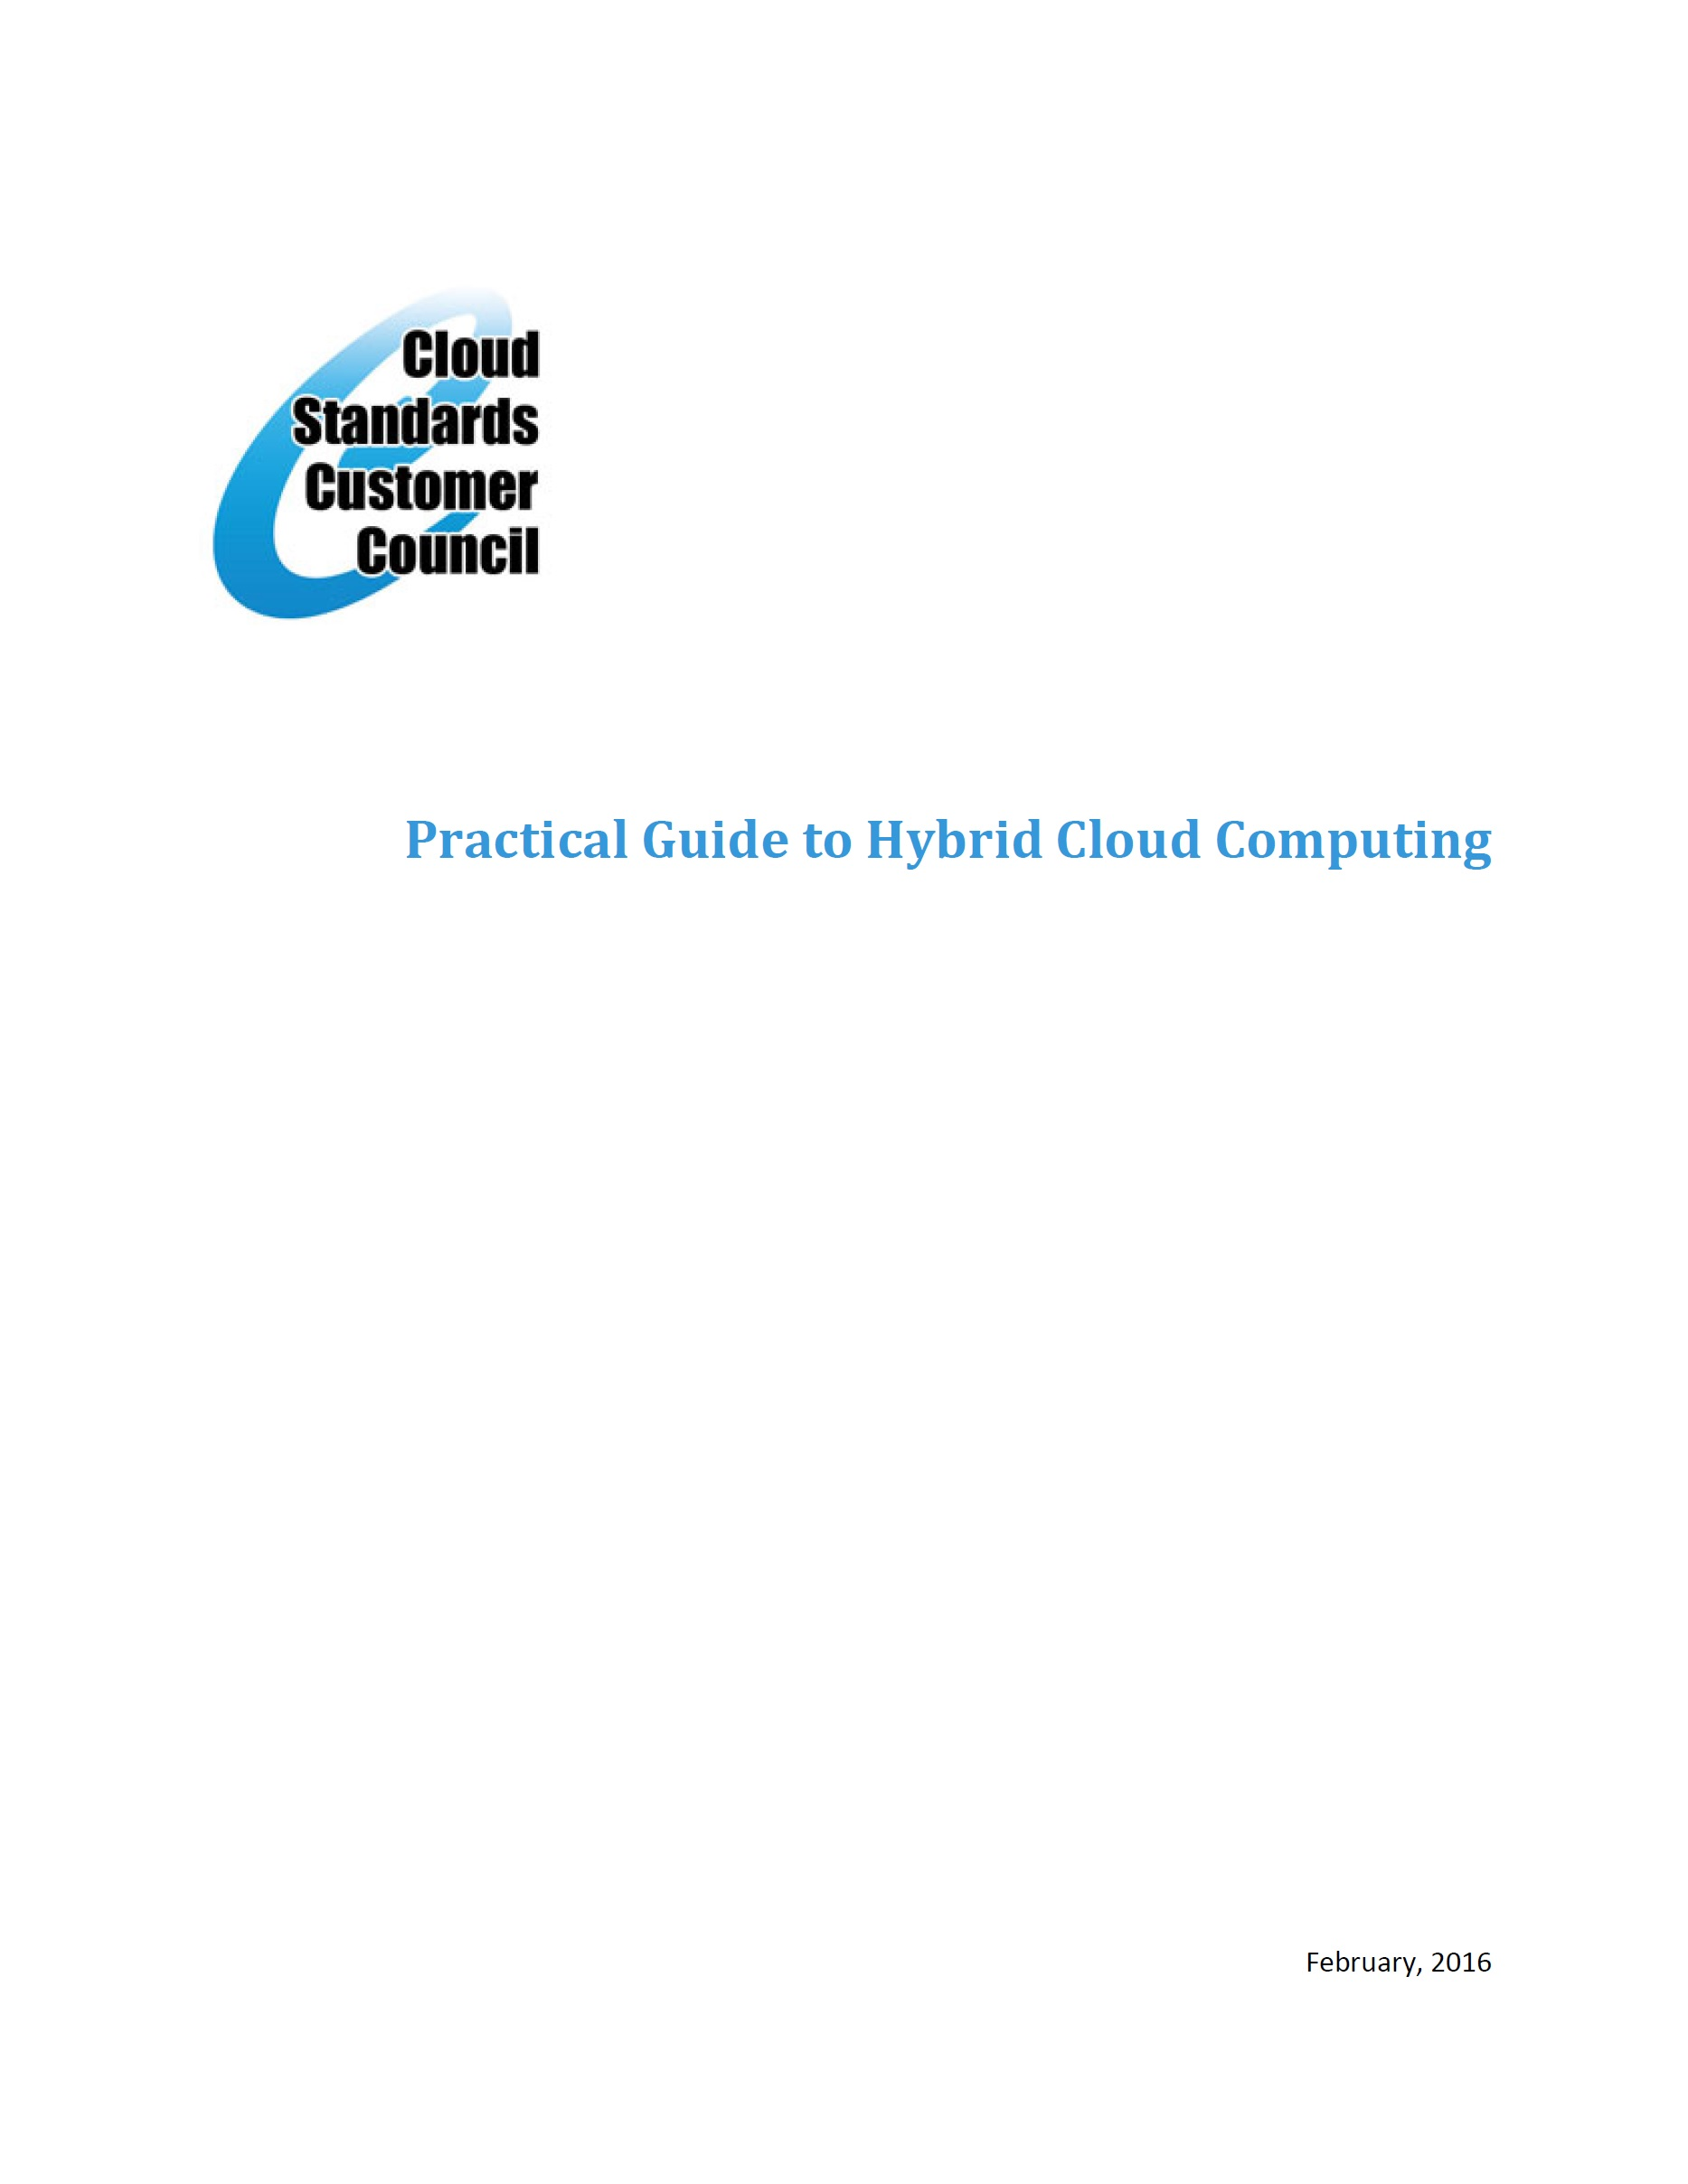 Practical Guide to Hybrid Cloud Computing – CSCC, 2016